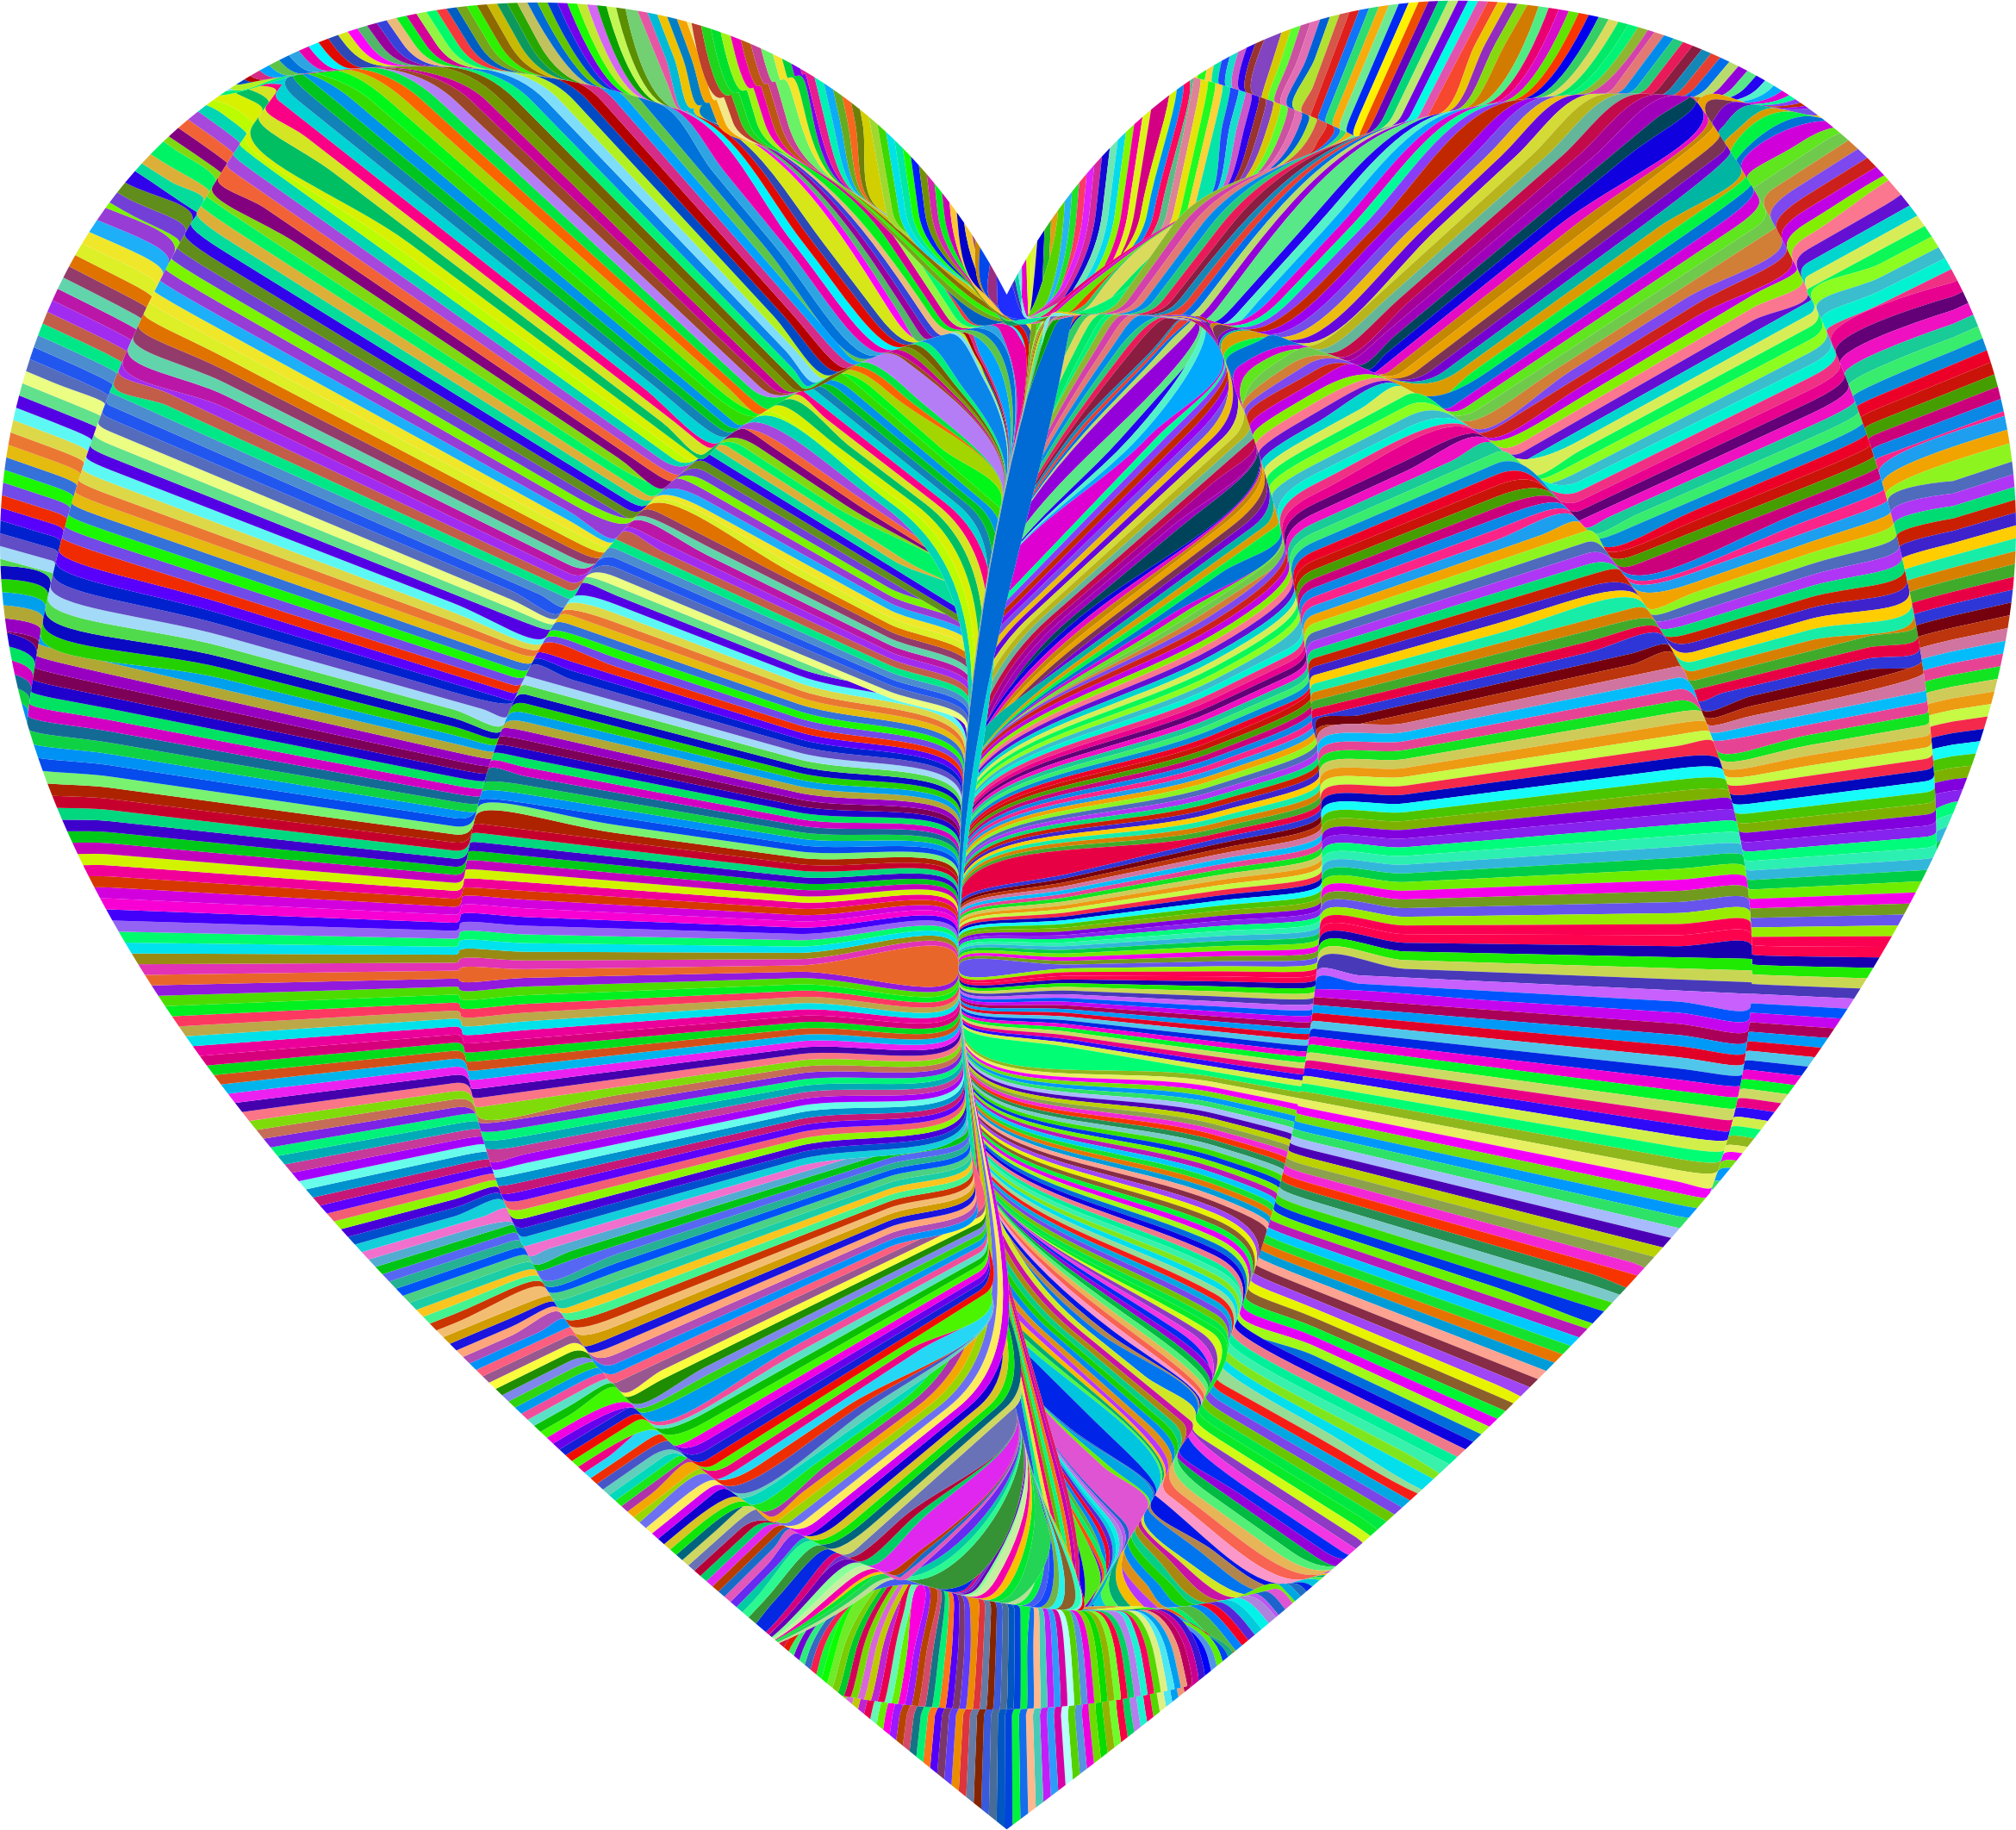 Peace clipart psychedelic flower. Folds heart big image